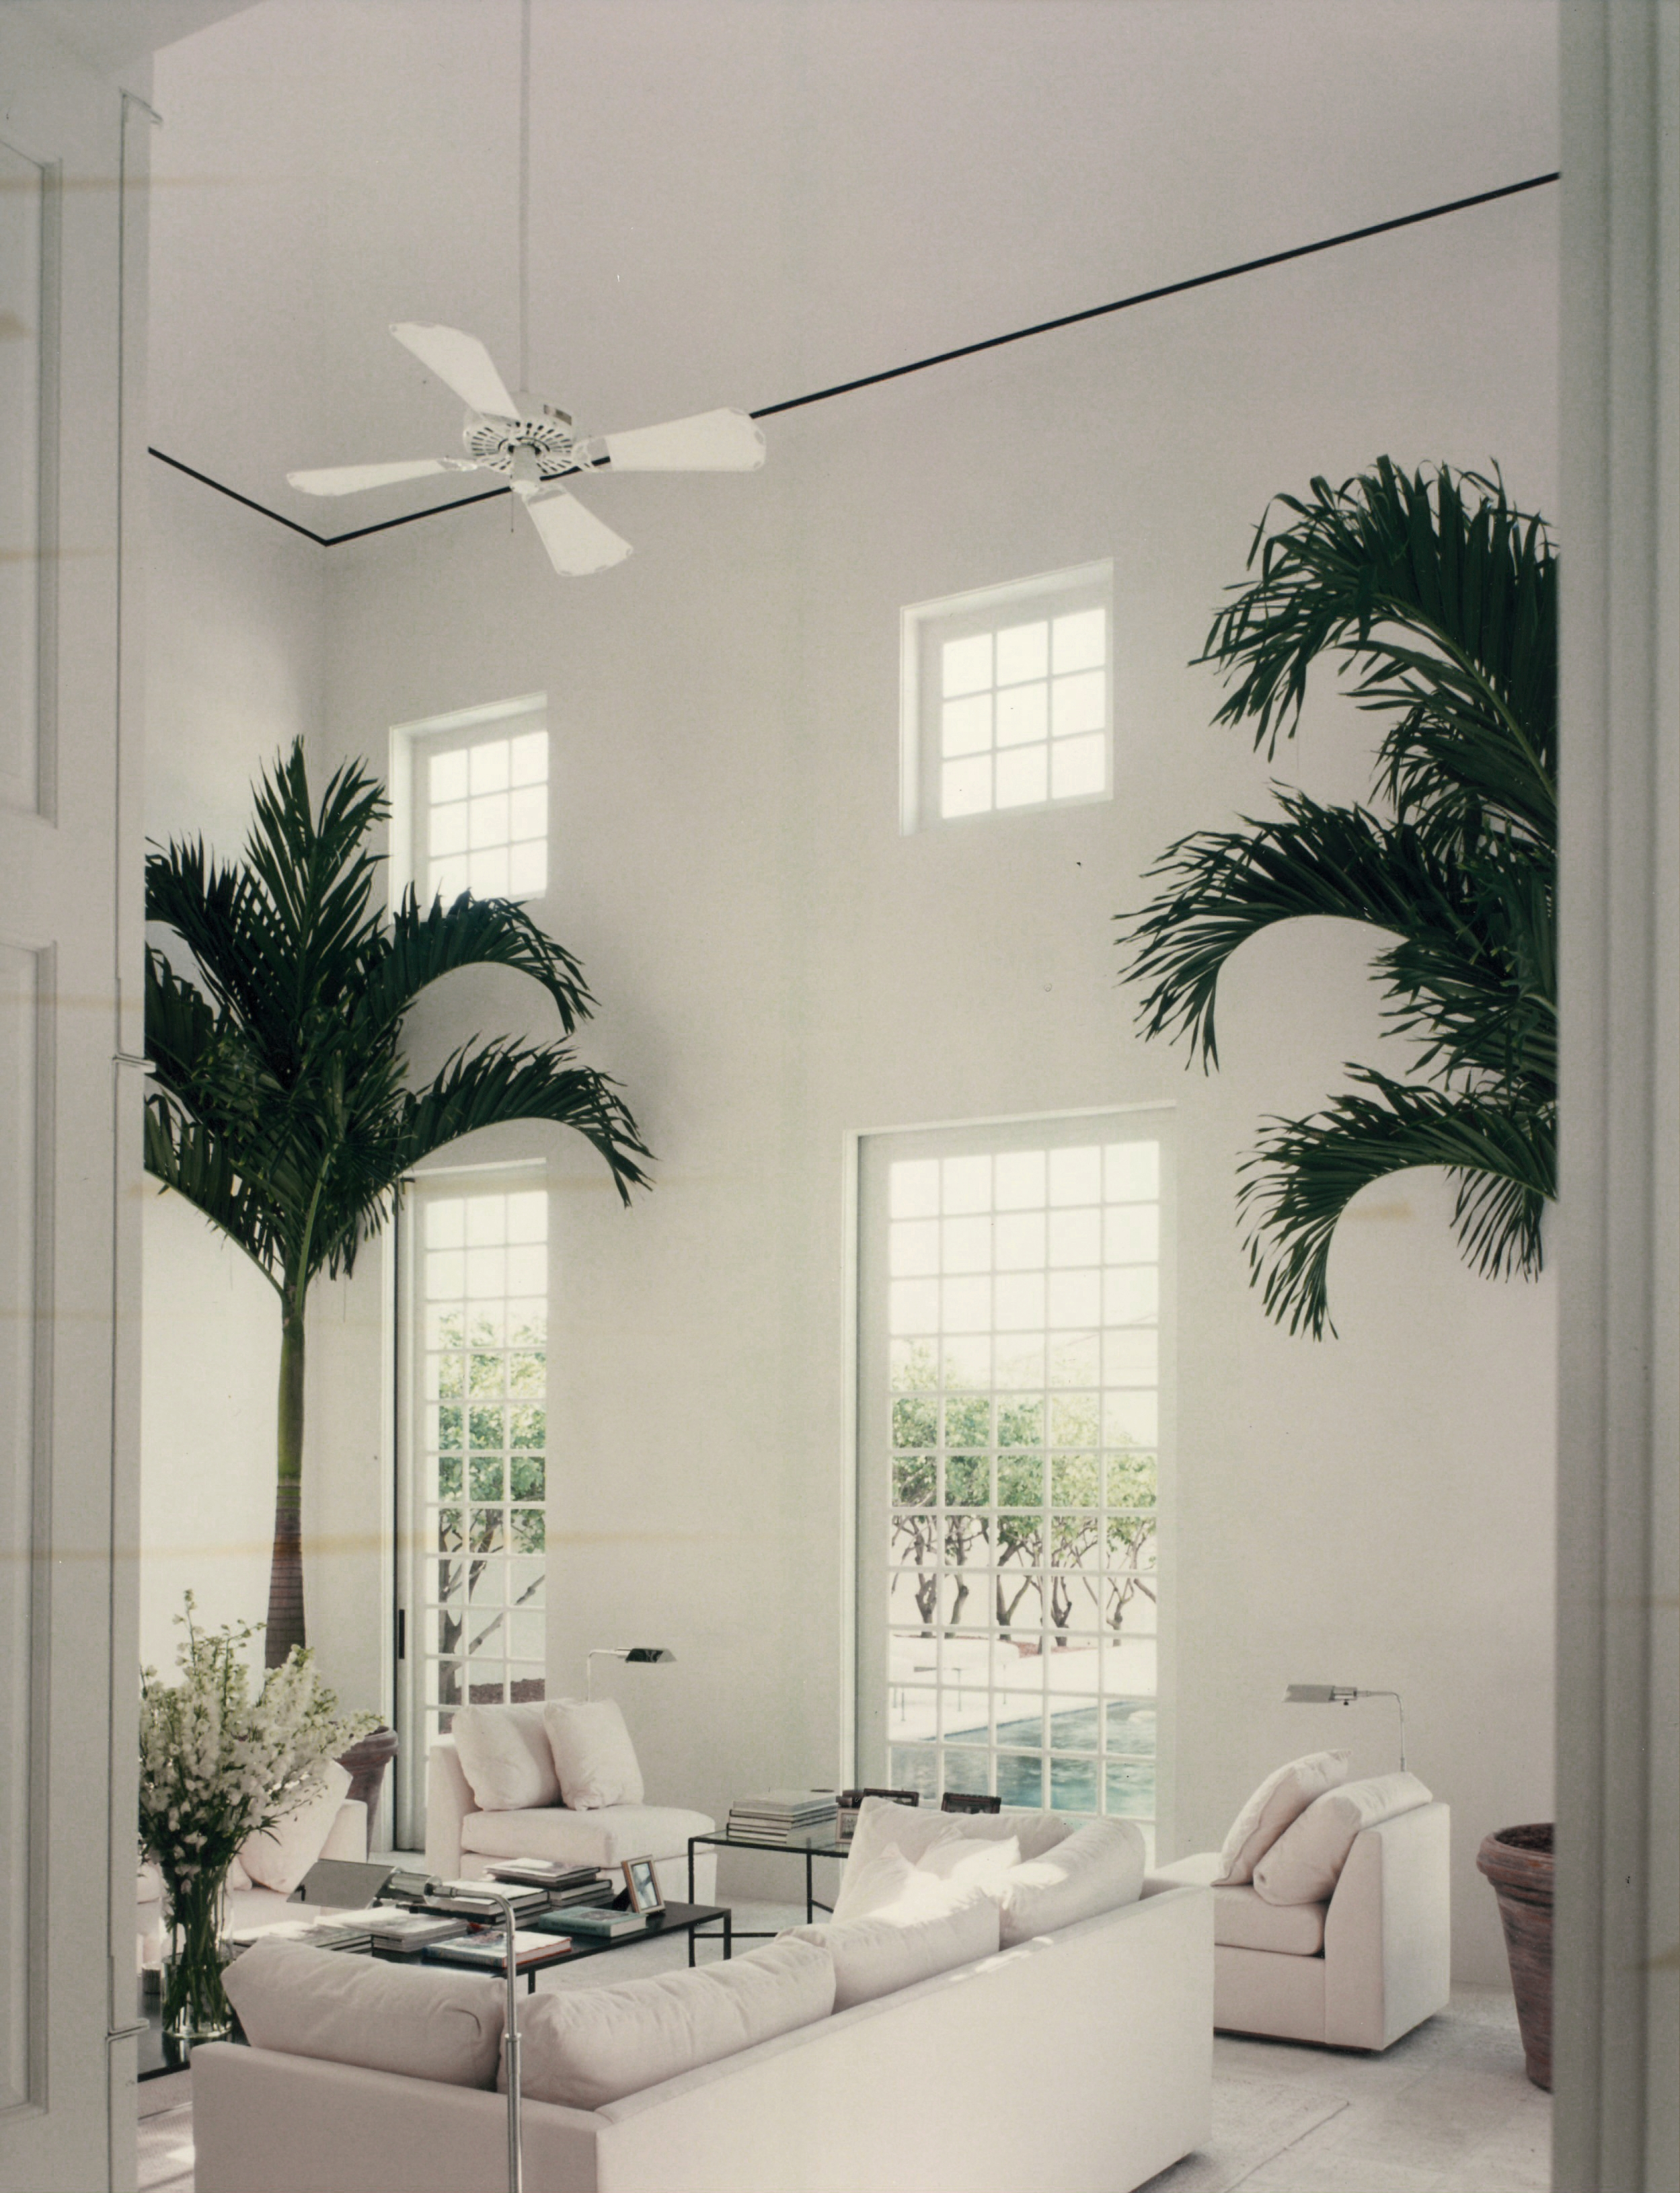 Vertical sliding Pocket doors brings the pool into the room.